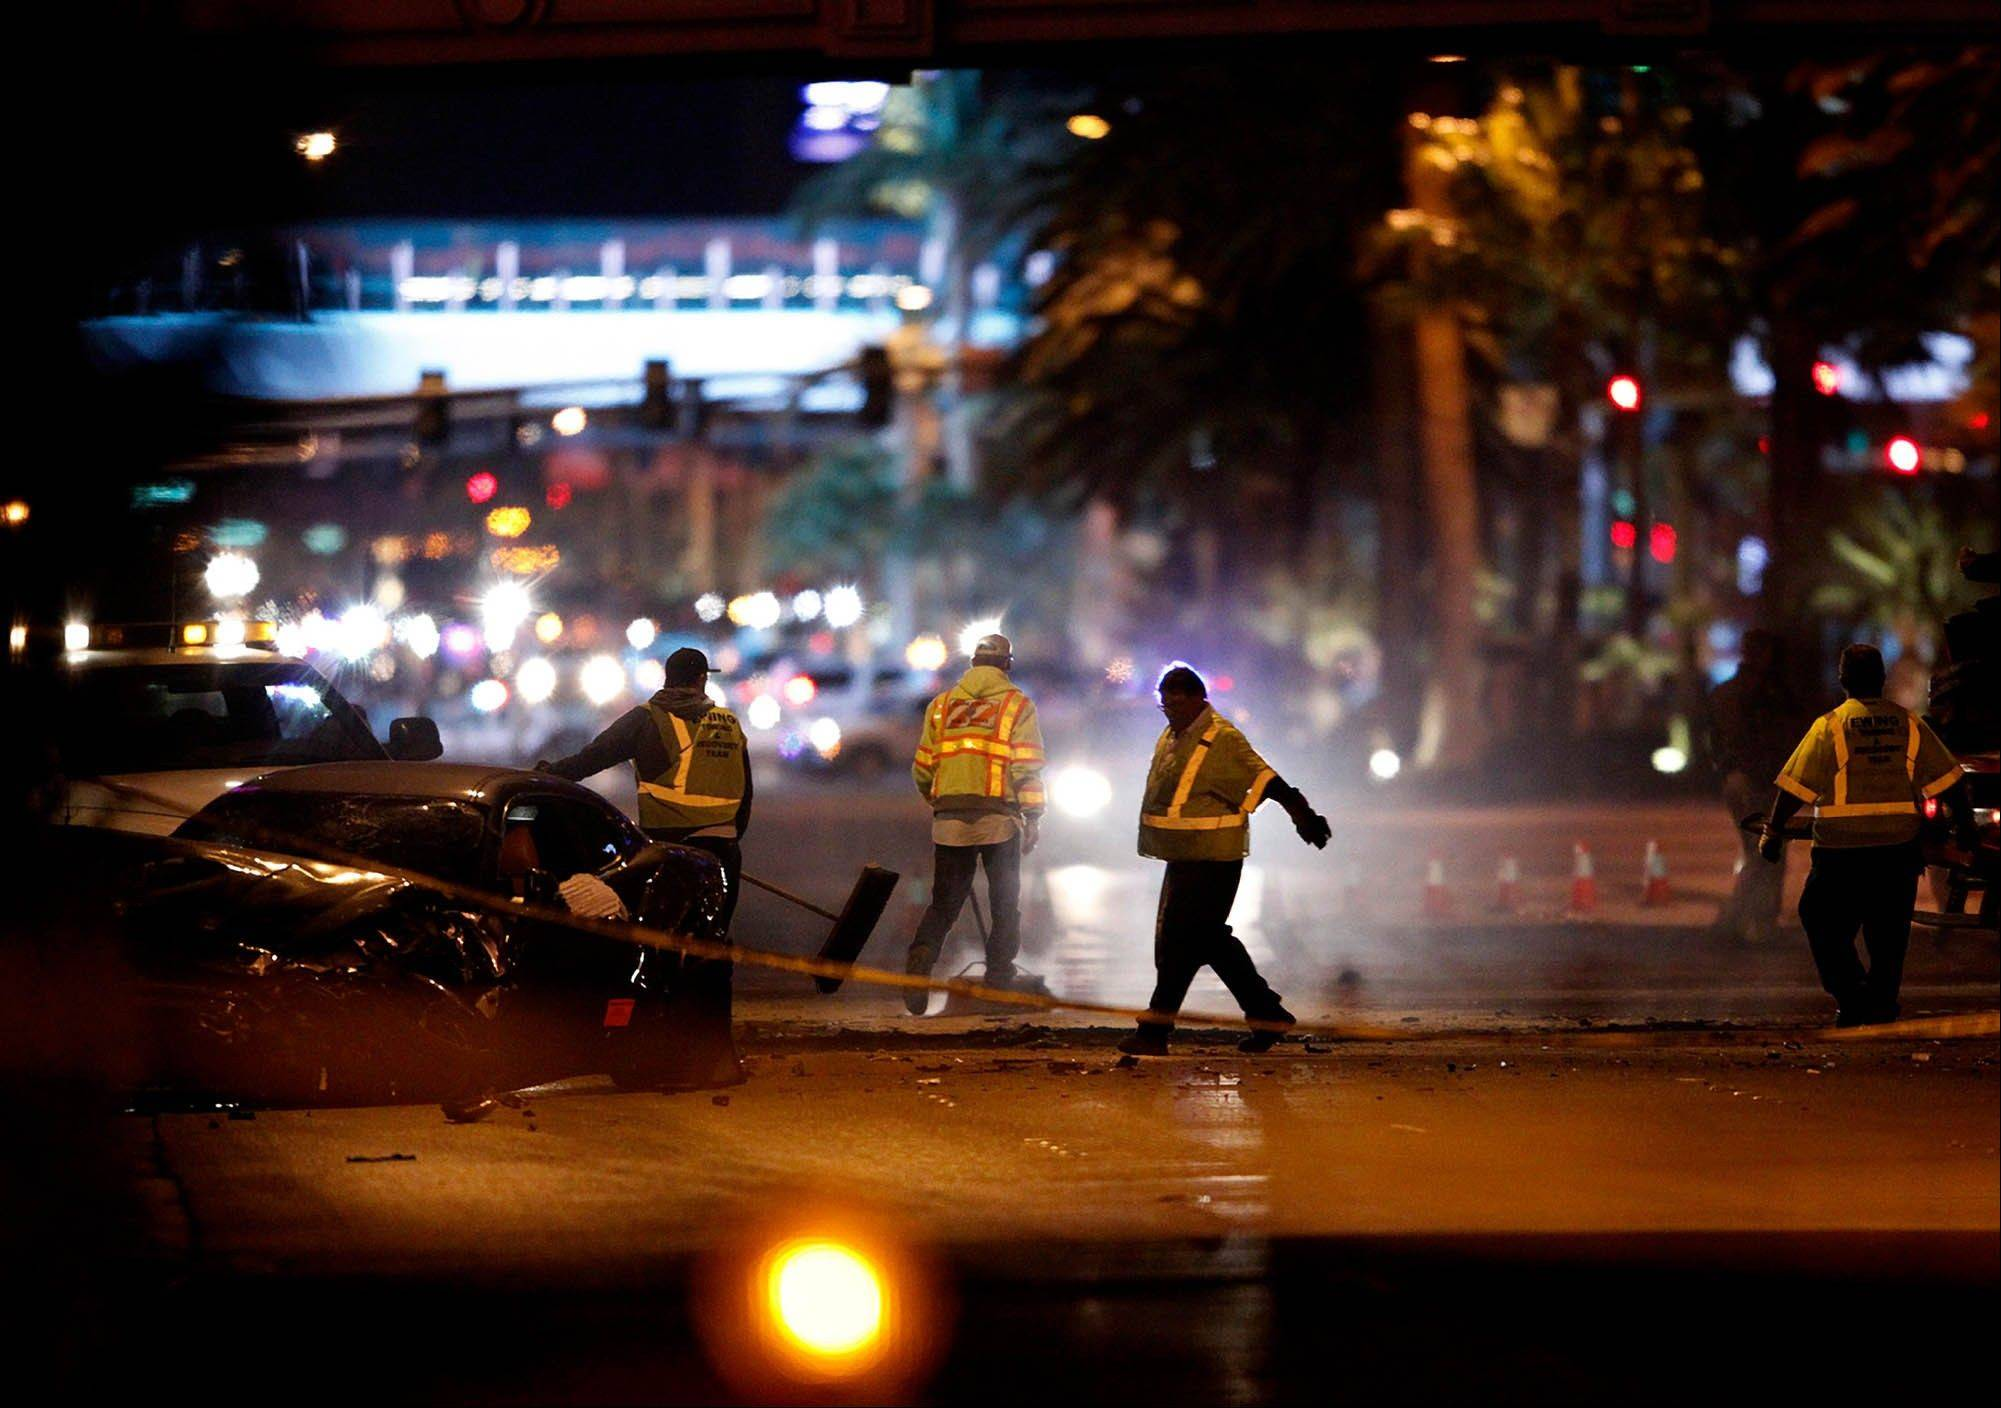 Tow truck drivers clean up and tow away cars involved in a drive-by shooting on Las Vegas Boulevard in Las Vegas Thursday, Feb. 21, 2013.